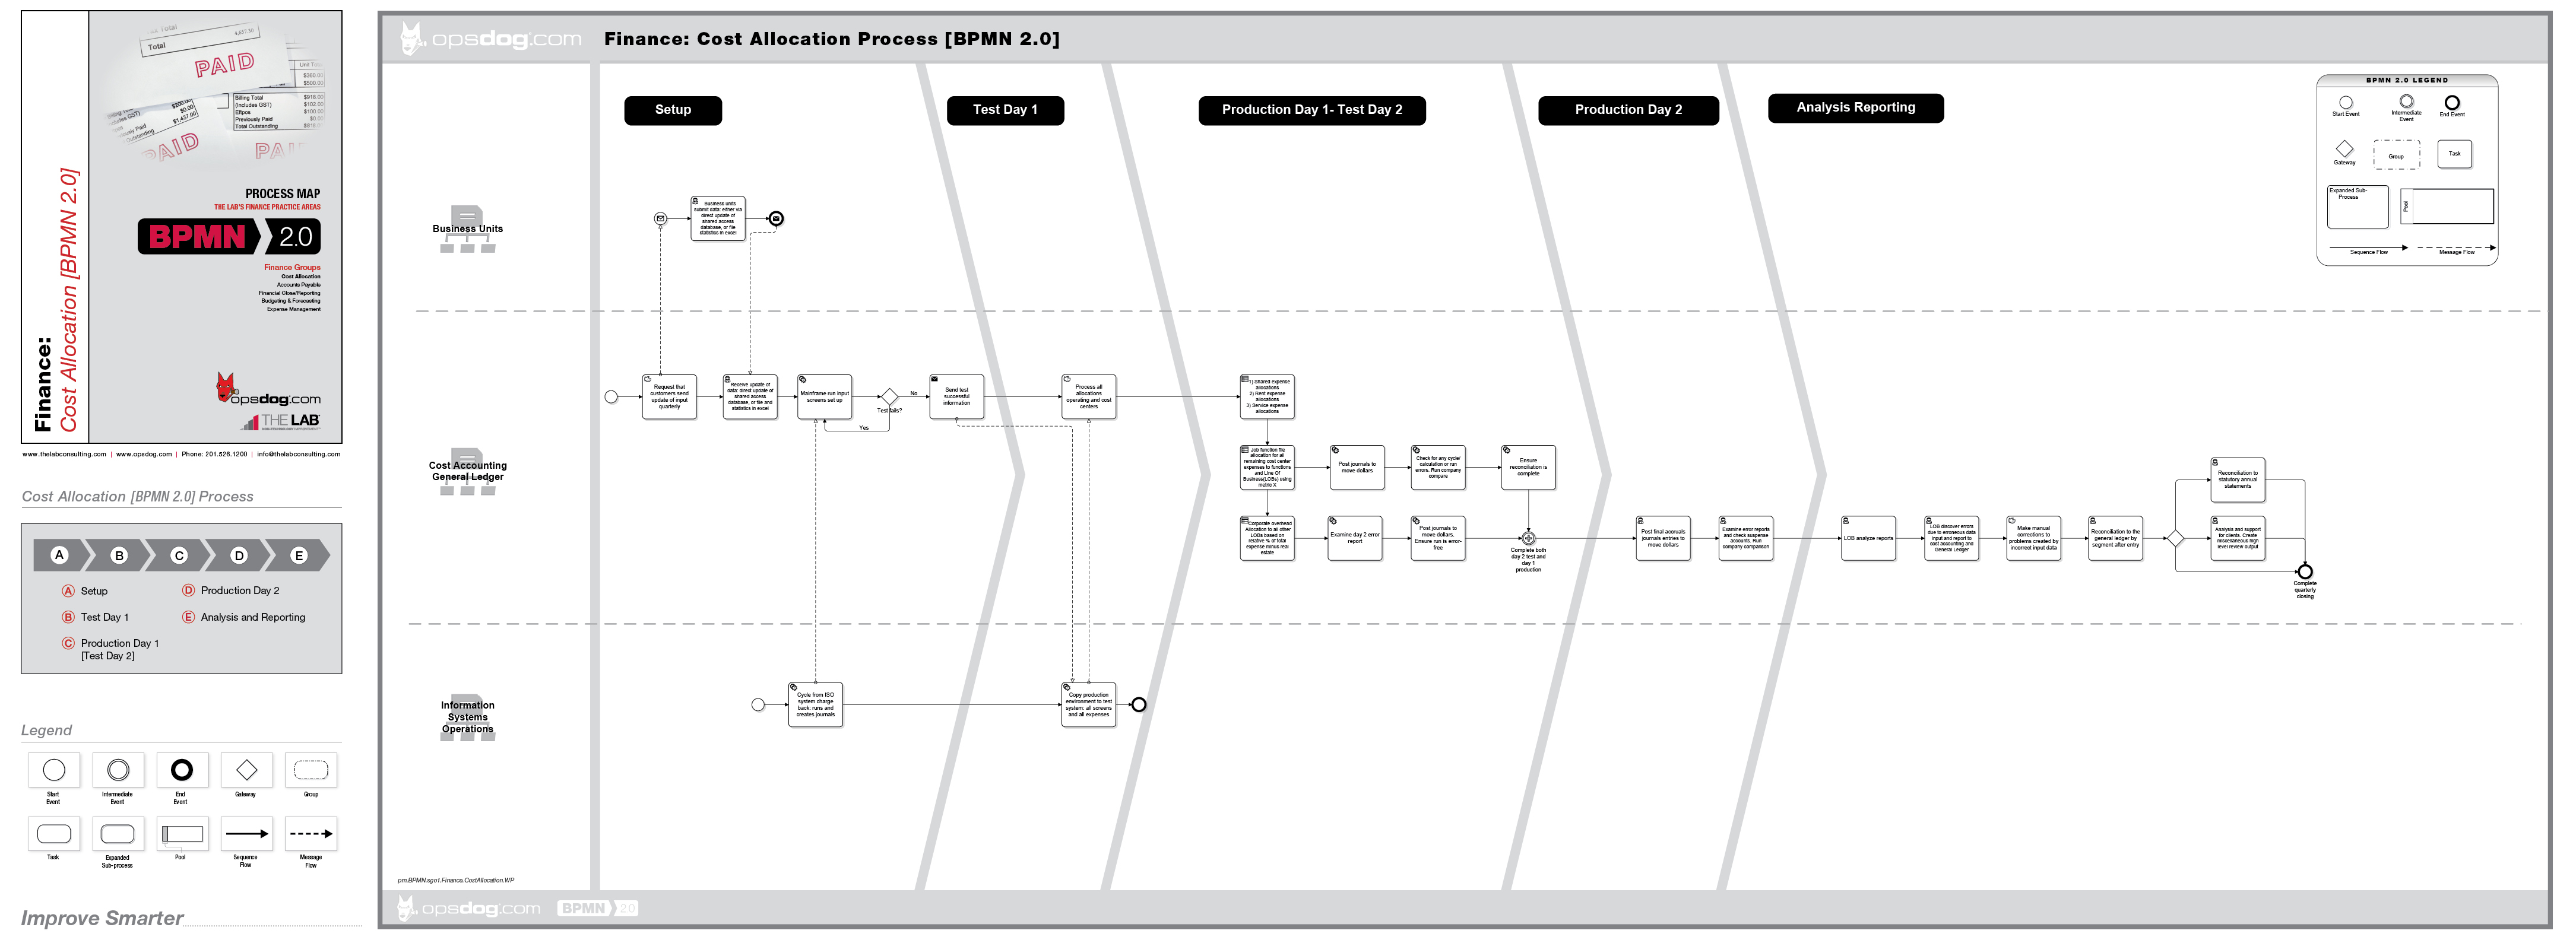 Opsdog provides business process mapping templates to corporate a sample cost allocation business process map template from opsdog flashek Image collections